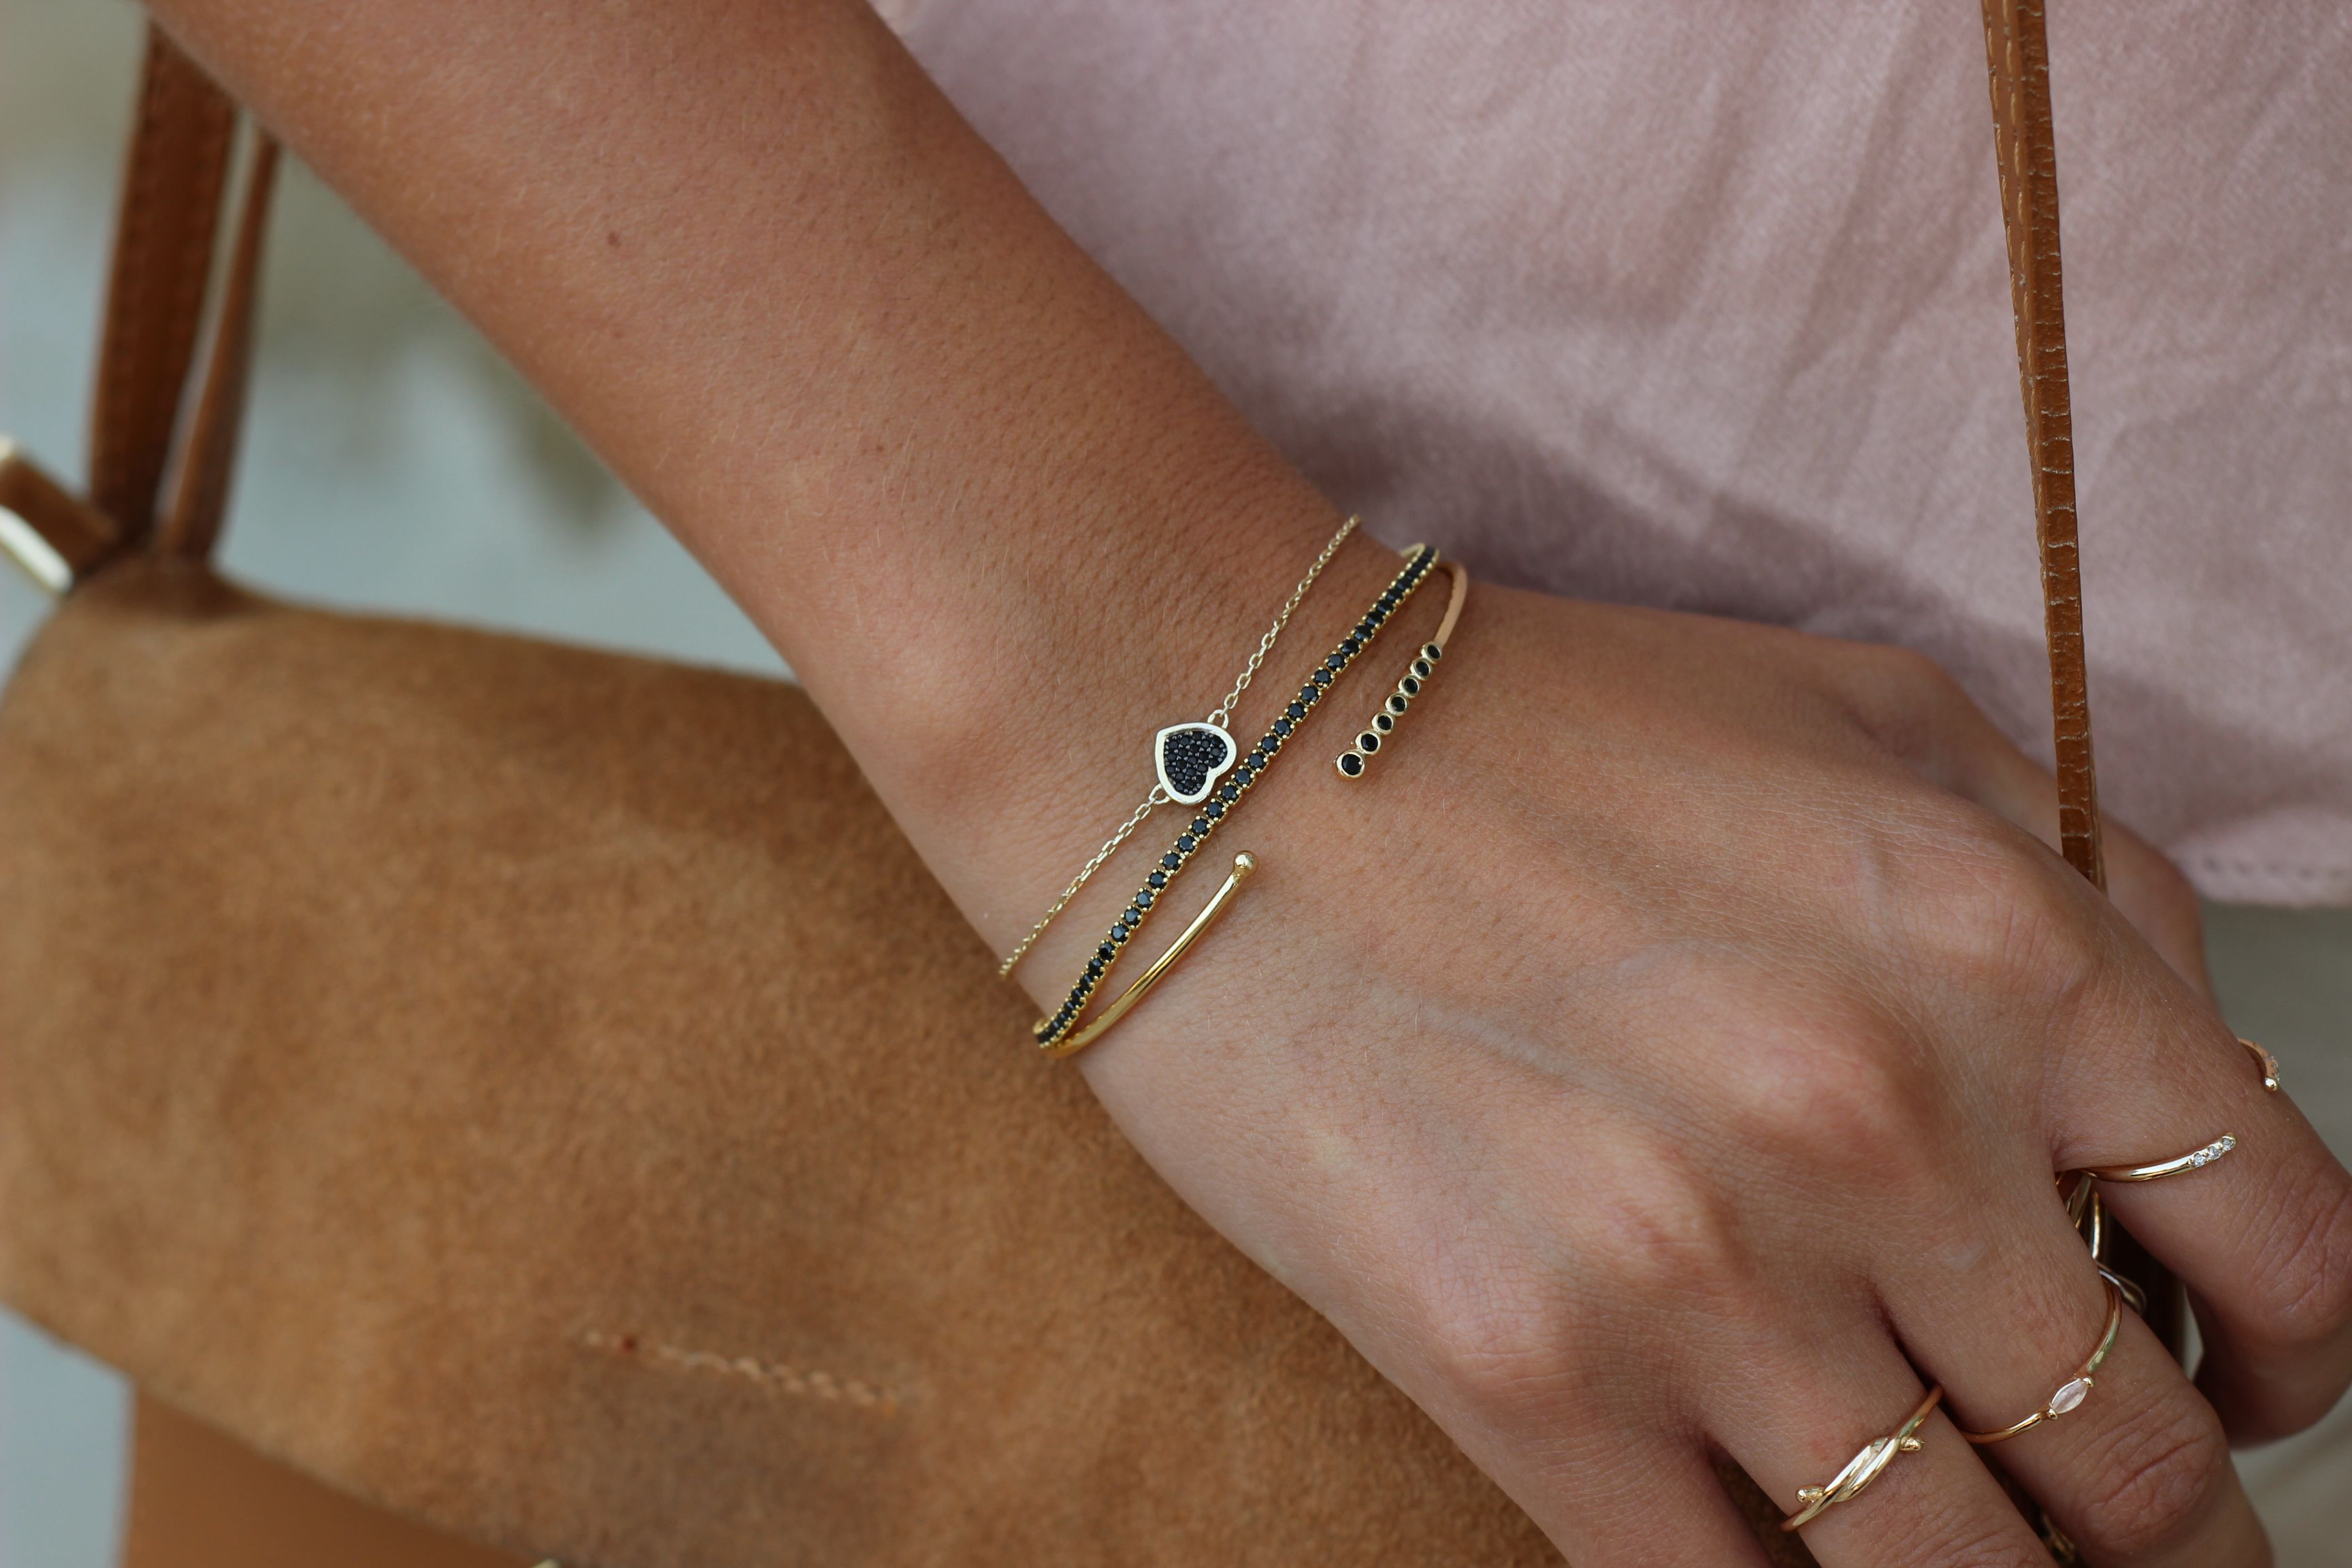 ETERNITY gold bracelet